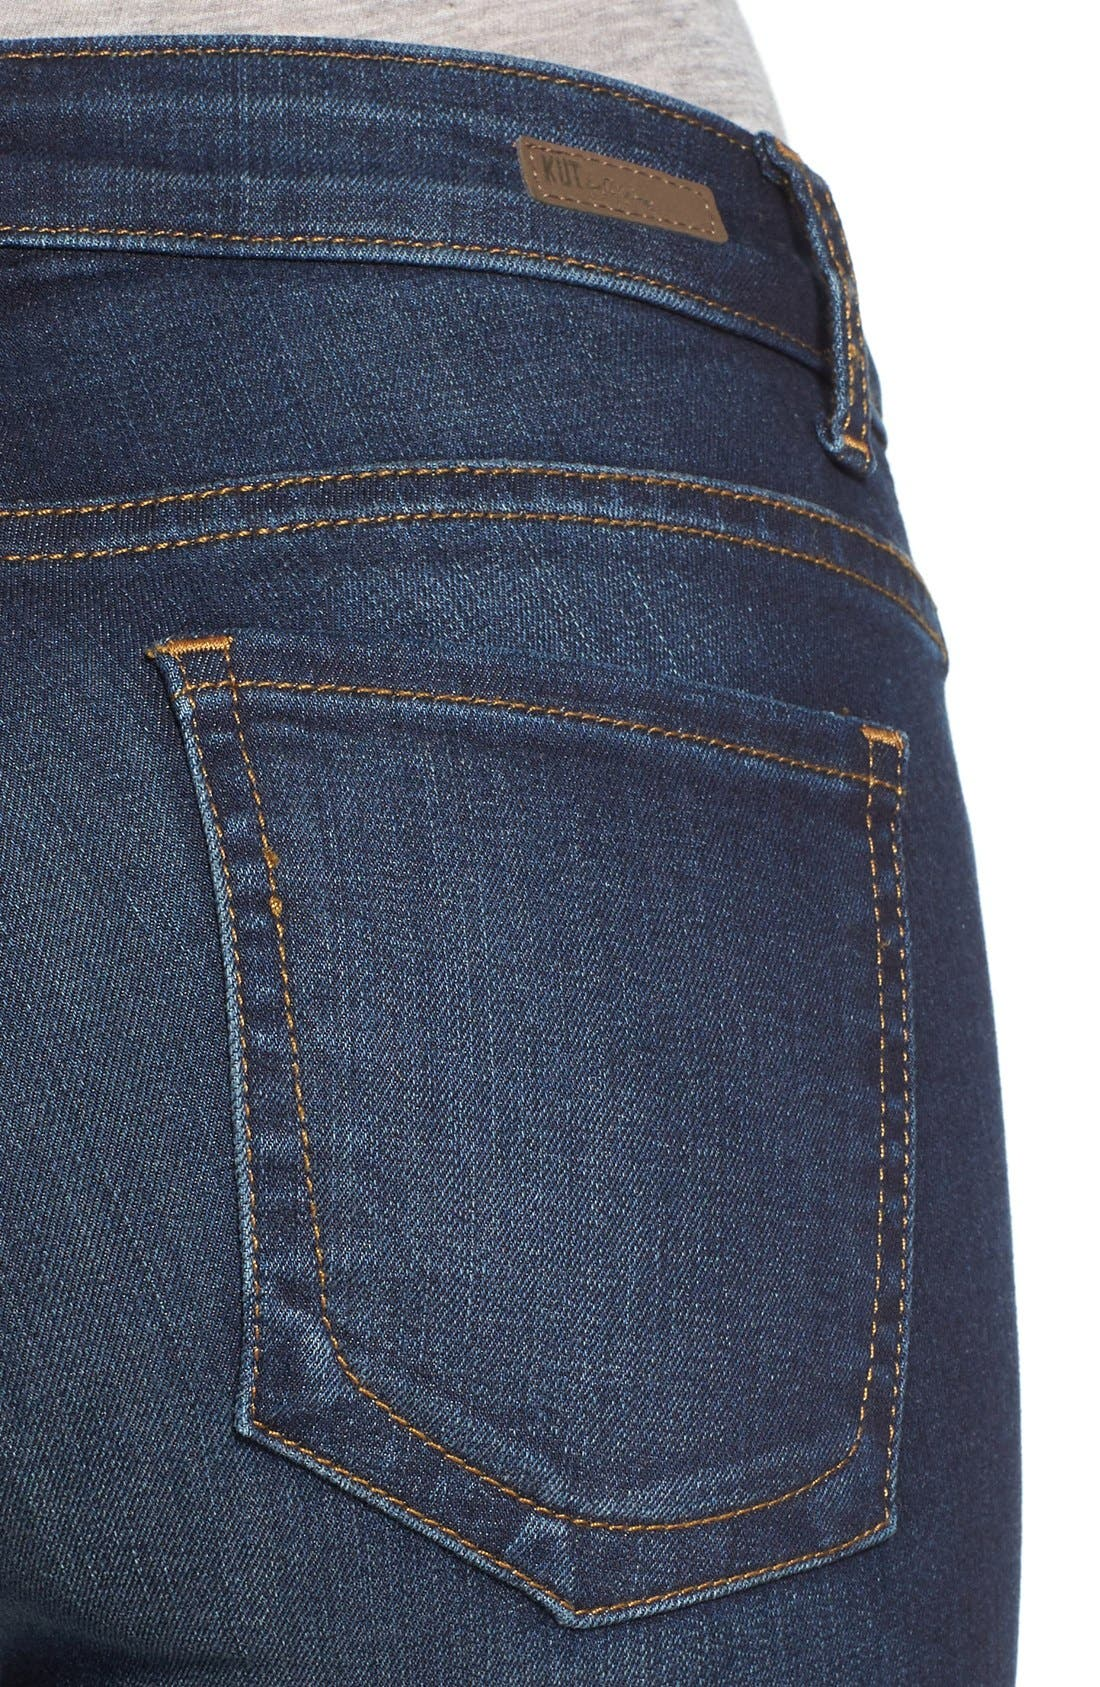 'Natalie' Stretch Bootleg Jeans,                             Alternate thumbnail 5, color,